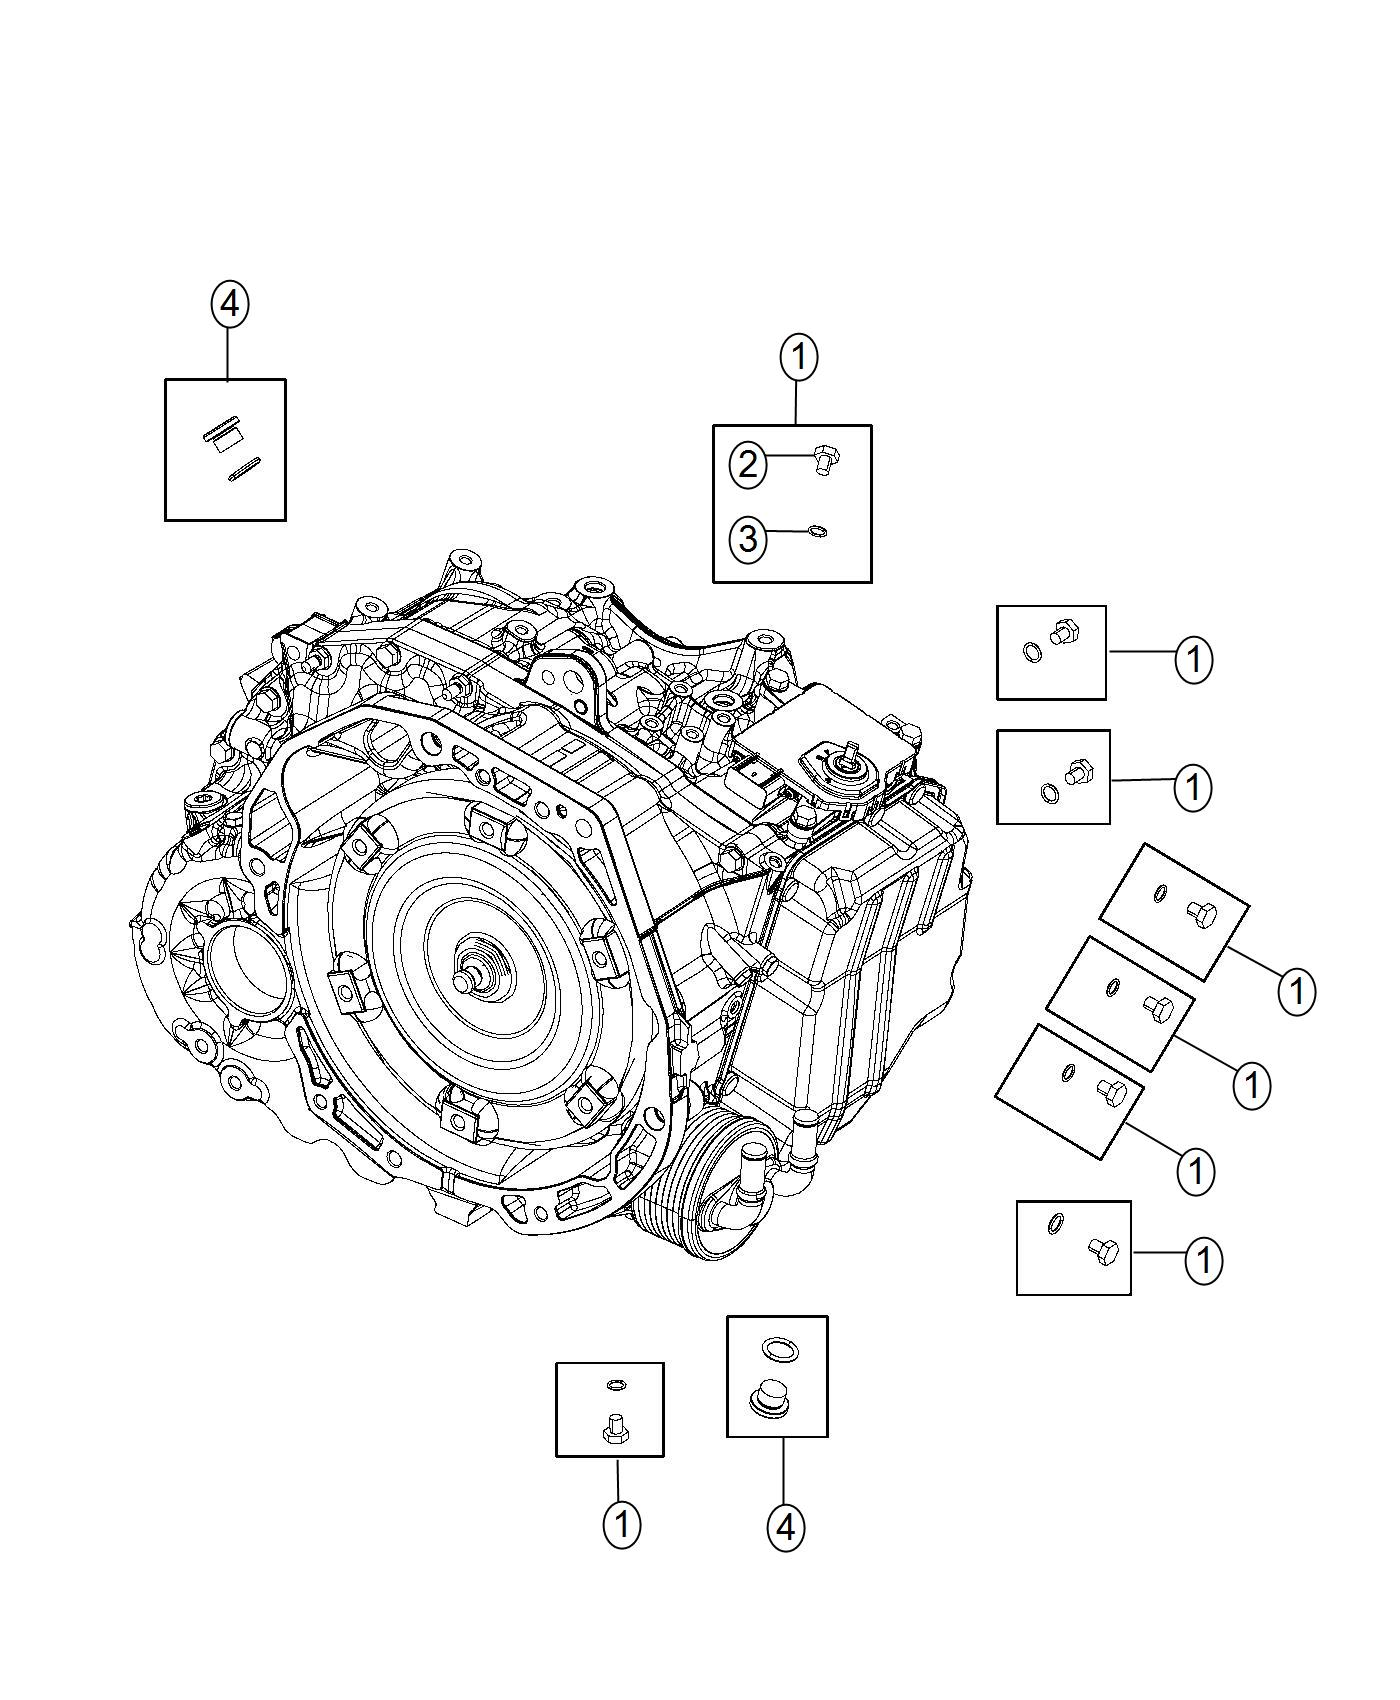 2012 fiat 500 engine parts diagram furthermore 2080972 where does neutral safty switch go in addition